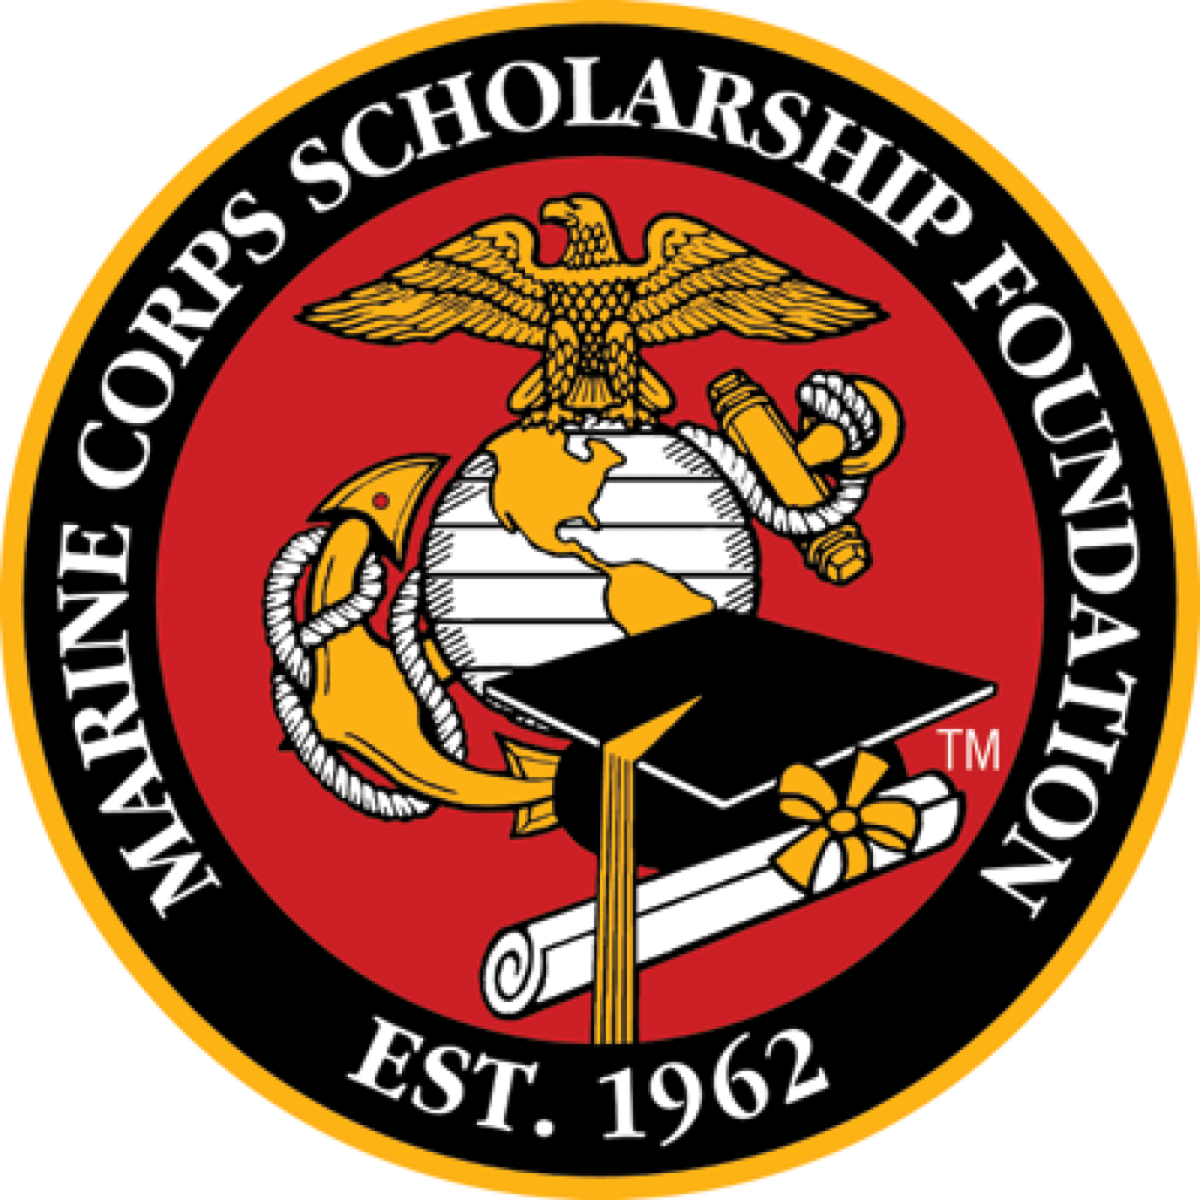 Image result for marine scholarship logo